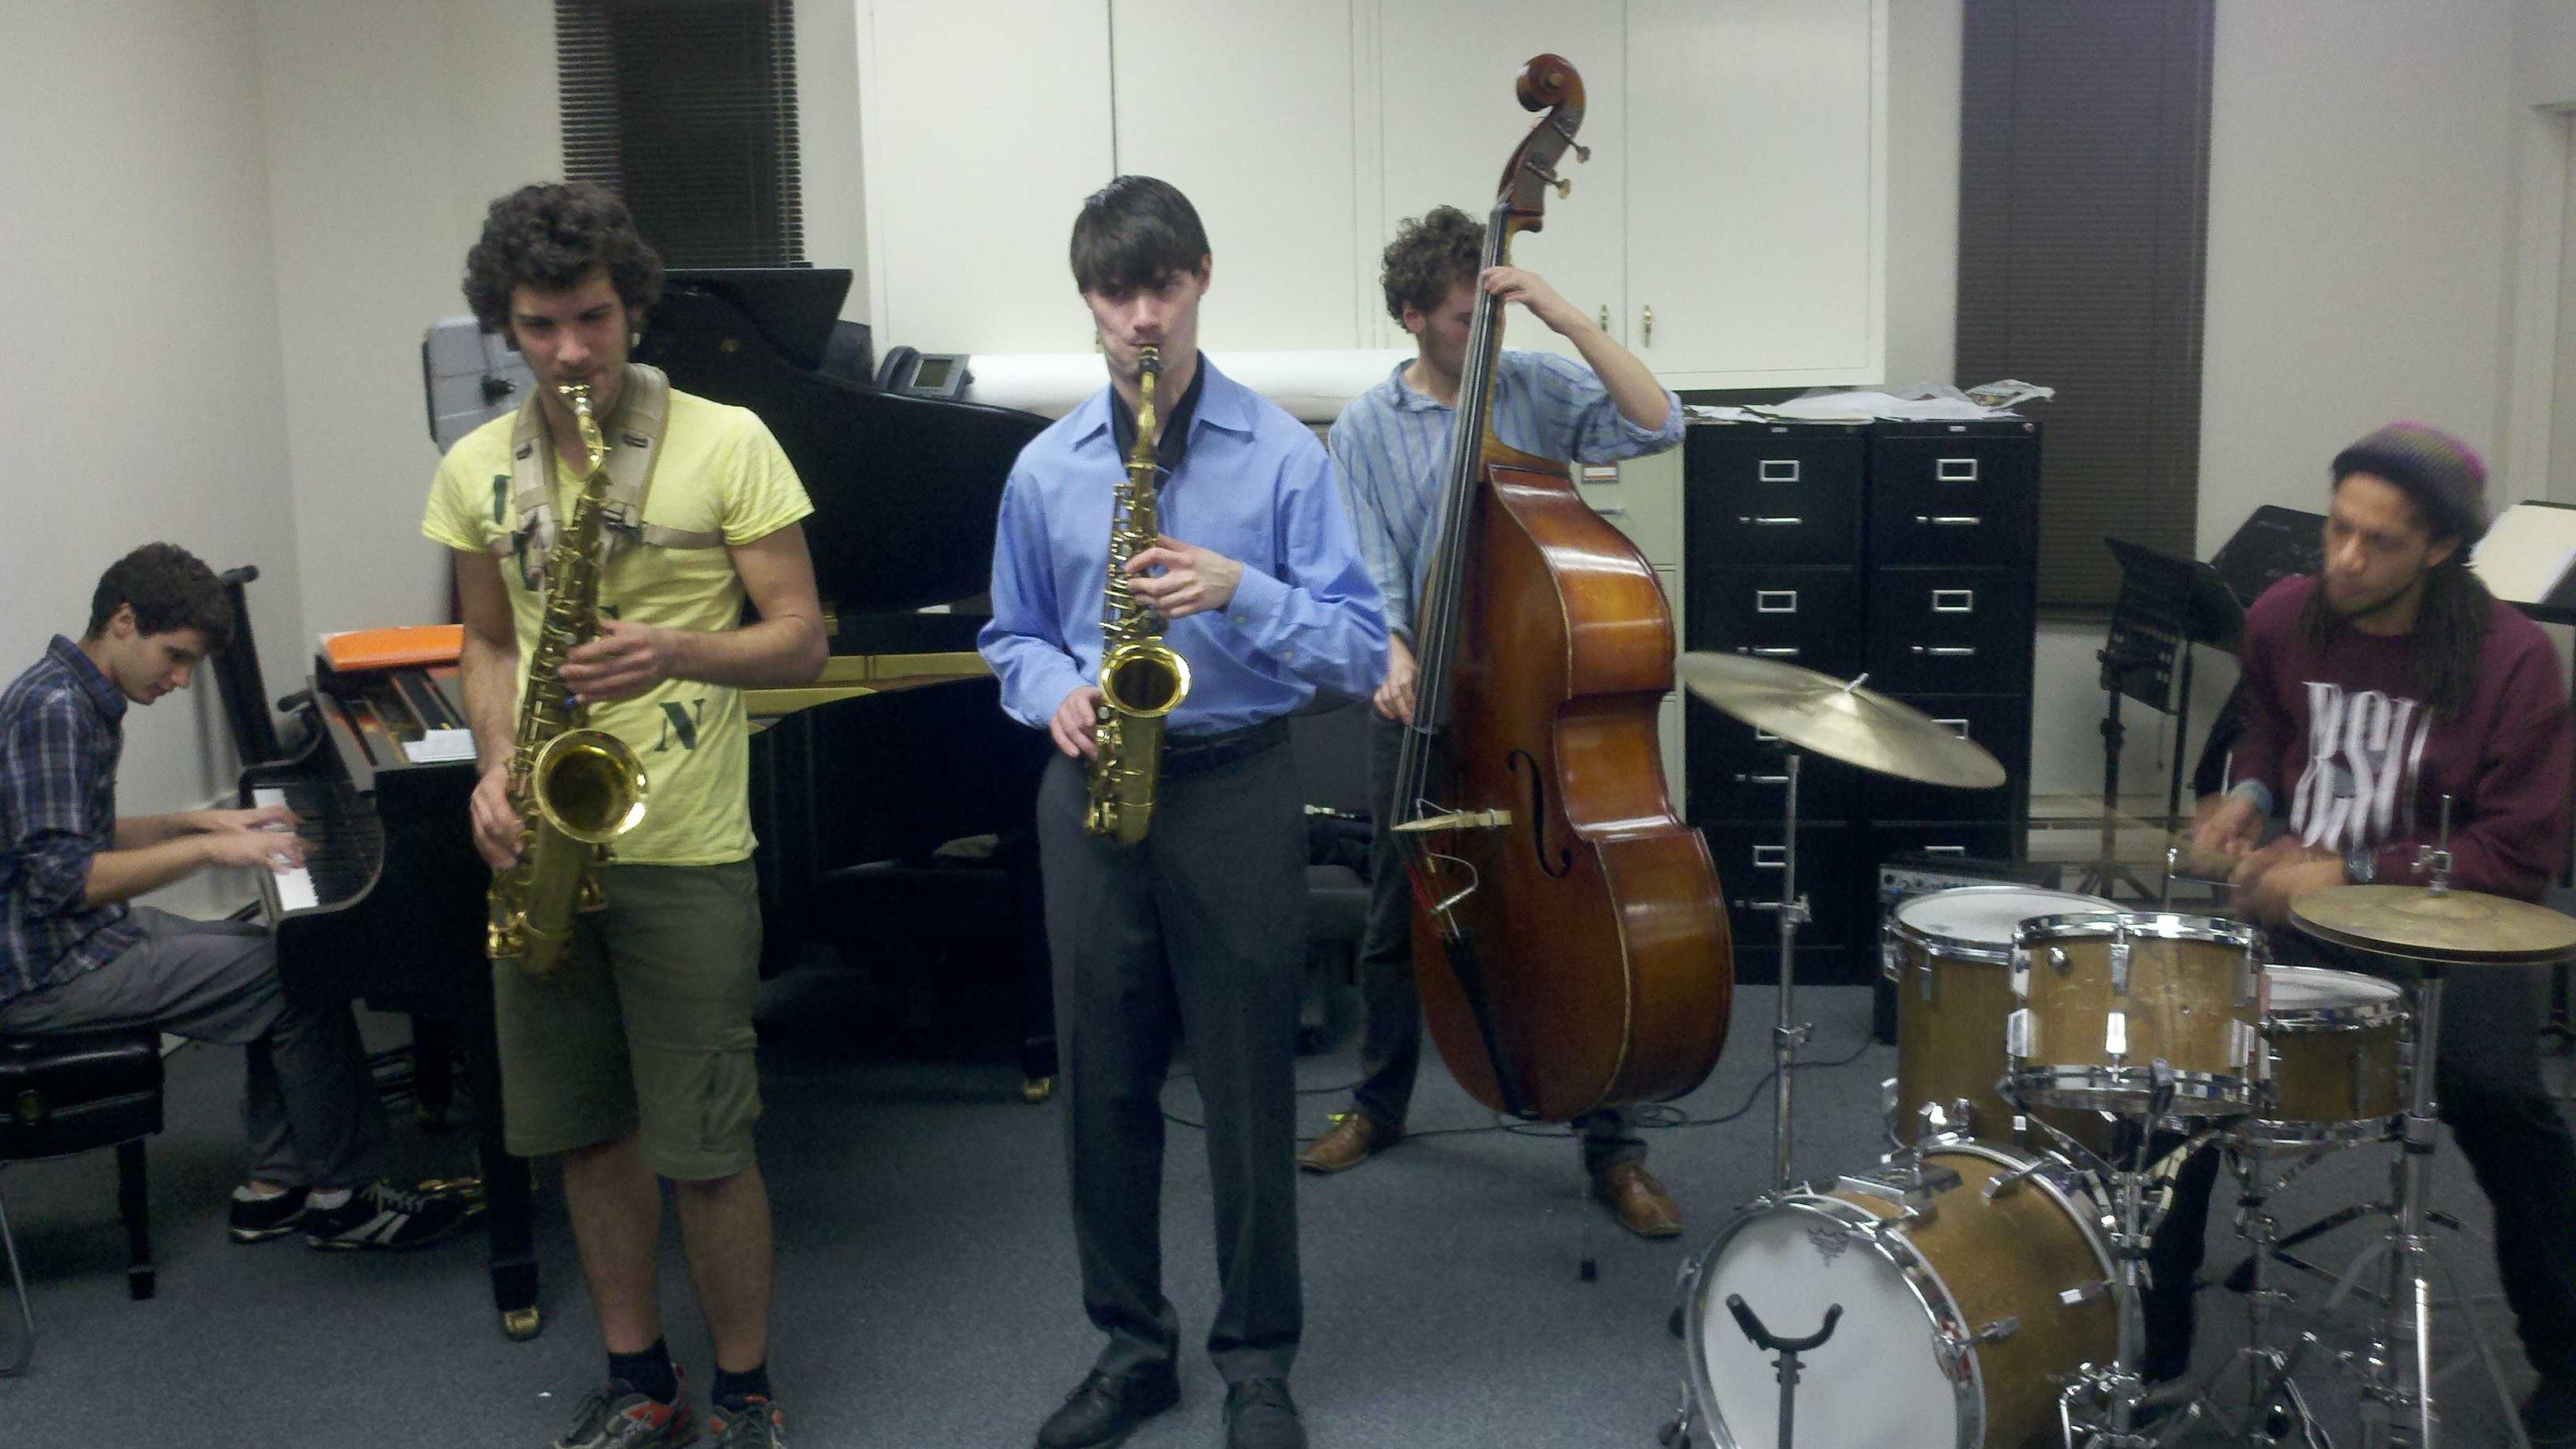 Five students at the University of the Pacific are in a fellowship program to study jazz music (Dec. 5, 2012).